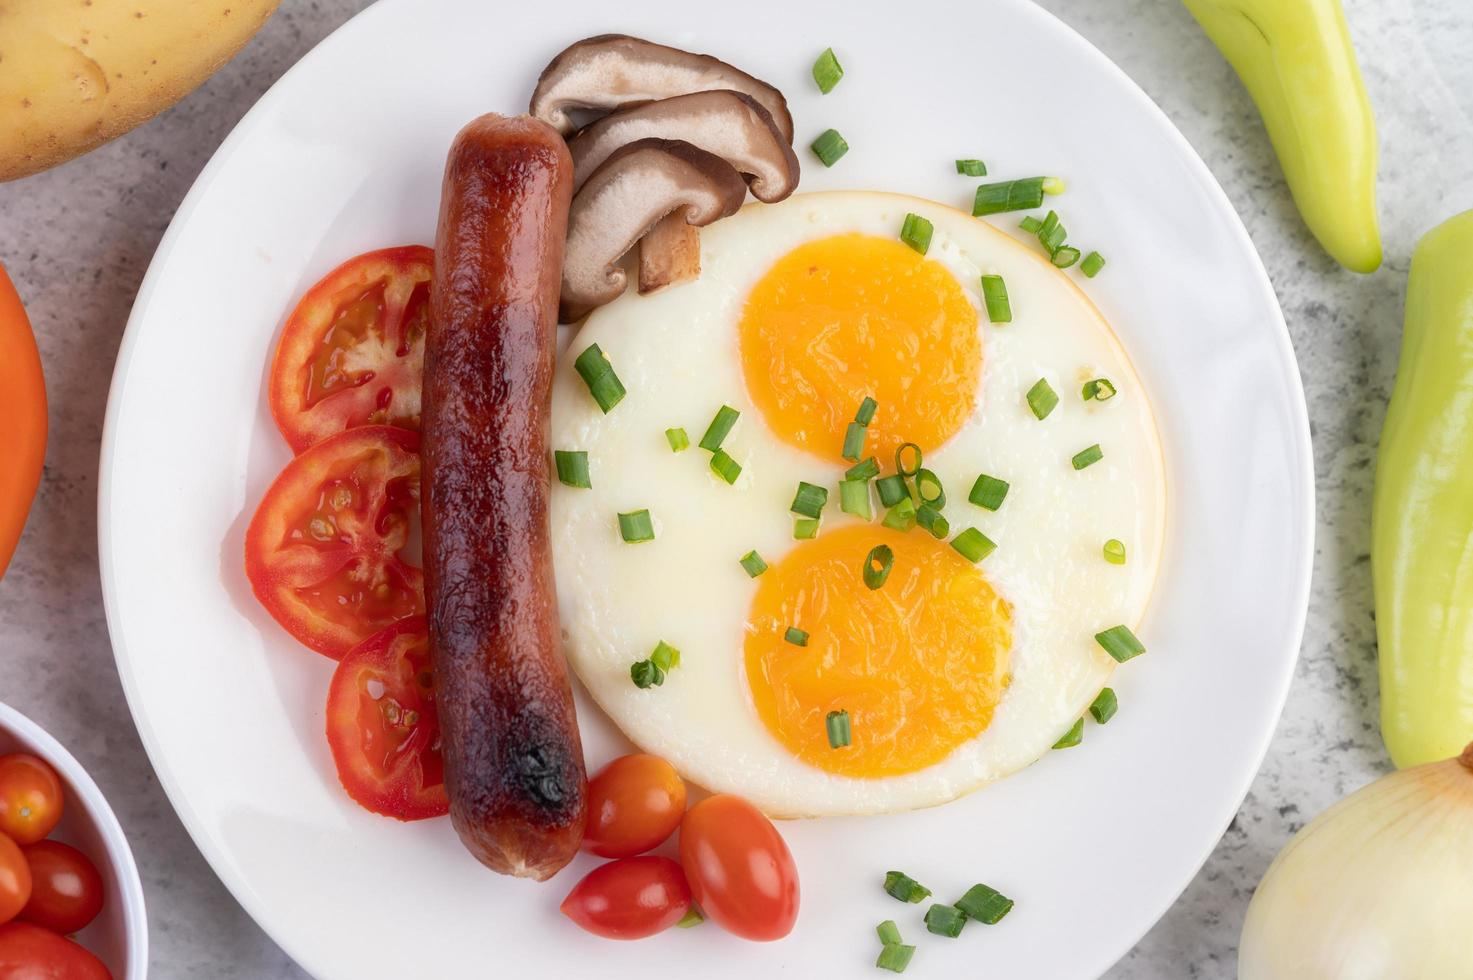 Breakfast plate with fried eggs, tomatoes, Chinese sausage and mushrooms photo